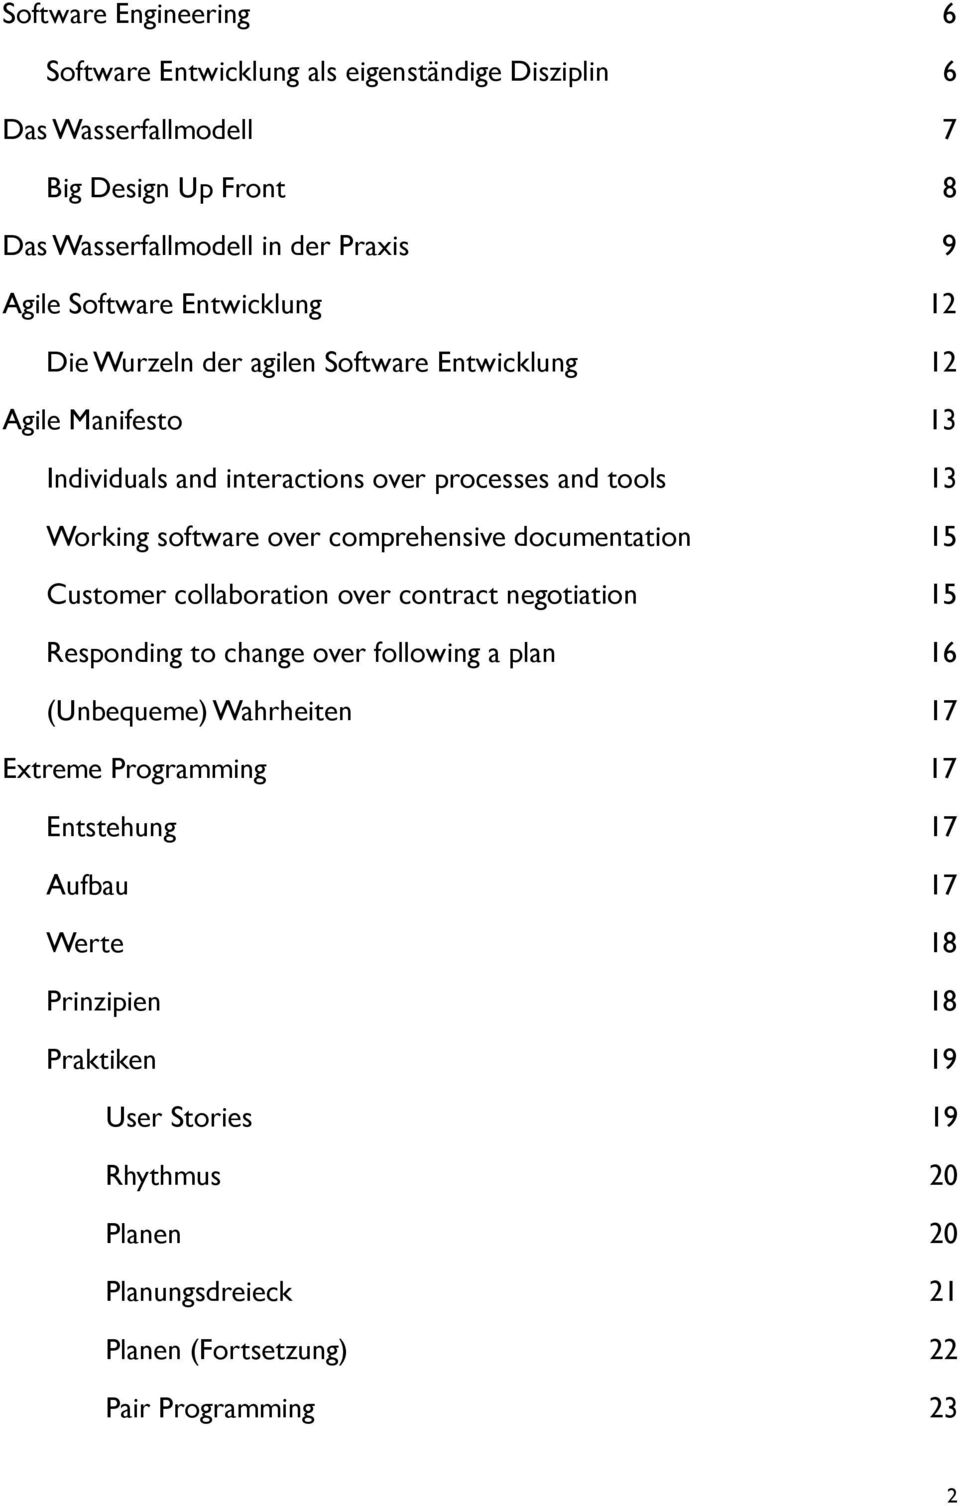 over comprehensive documentation 15 Customer collaboration over contract negotiation 15 Responding to change over following a plan 16 (Unbequeme) Wahrheiten 17 Extreme